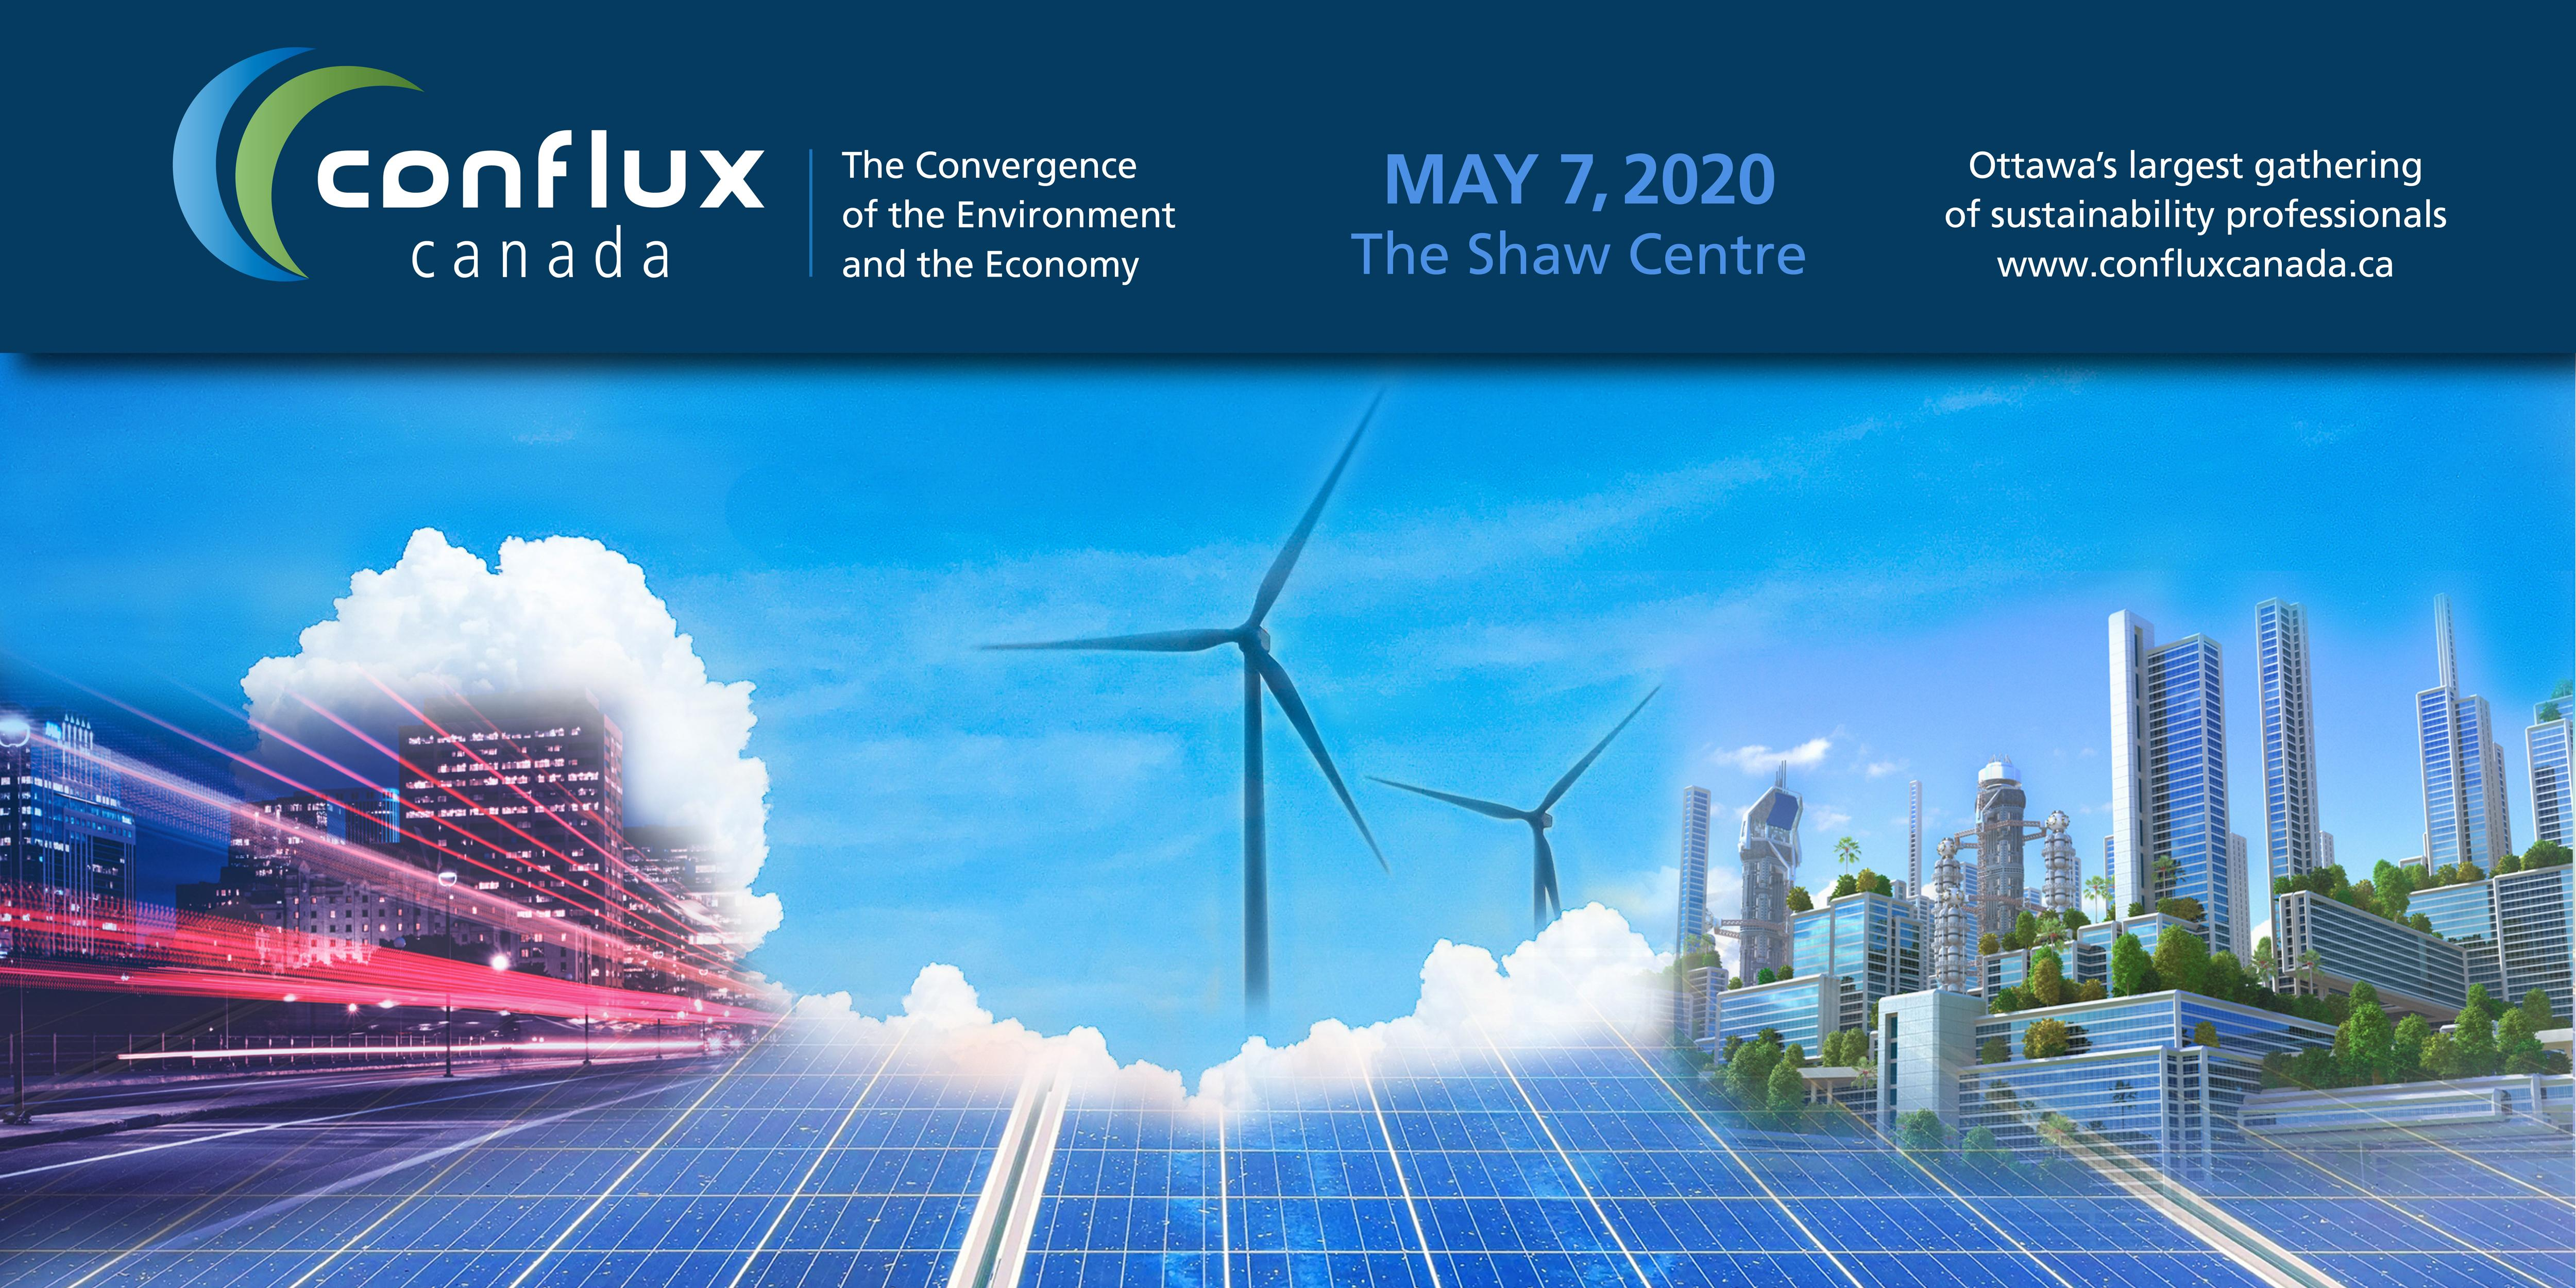 Conflux Canada   The Convergence of the Environment and the Economy